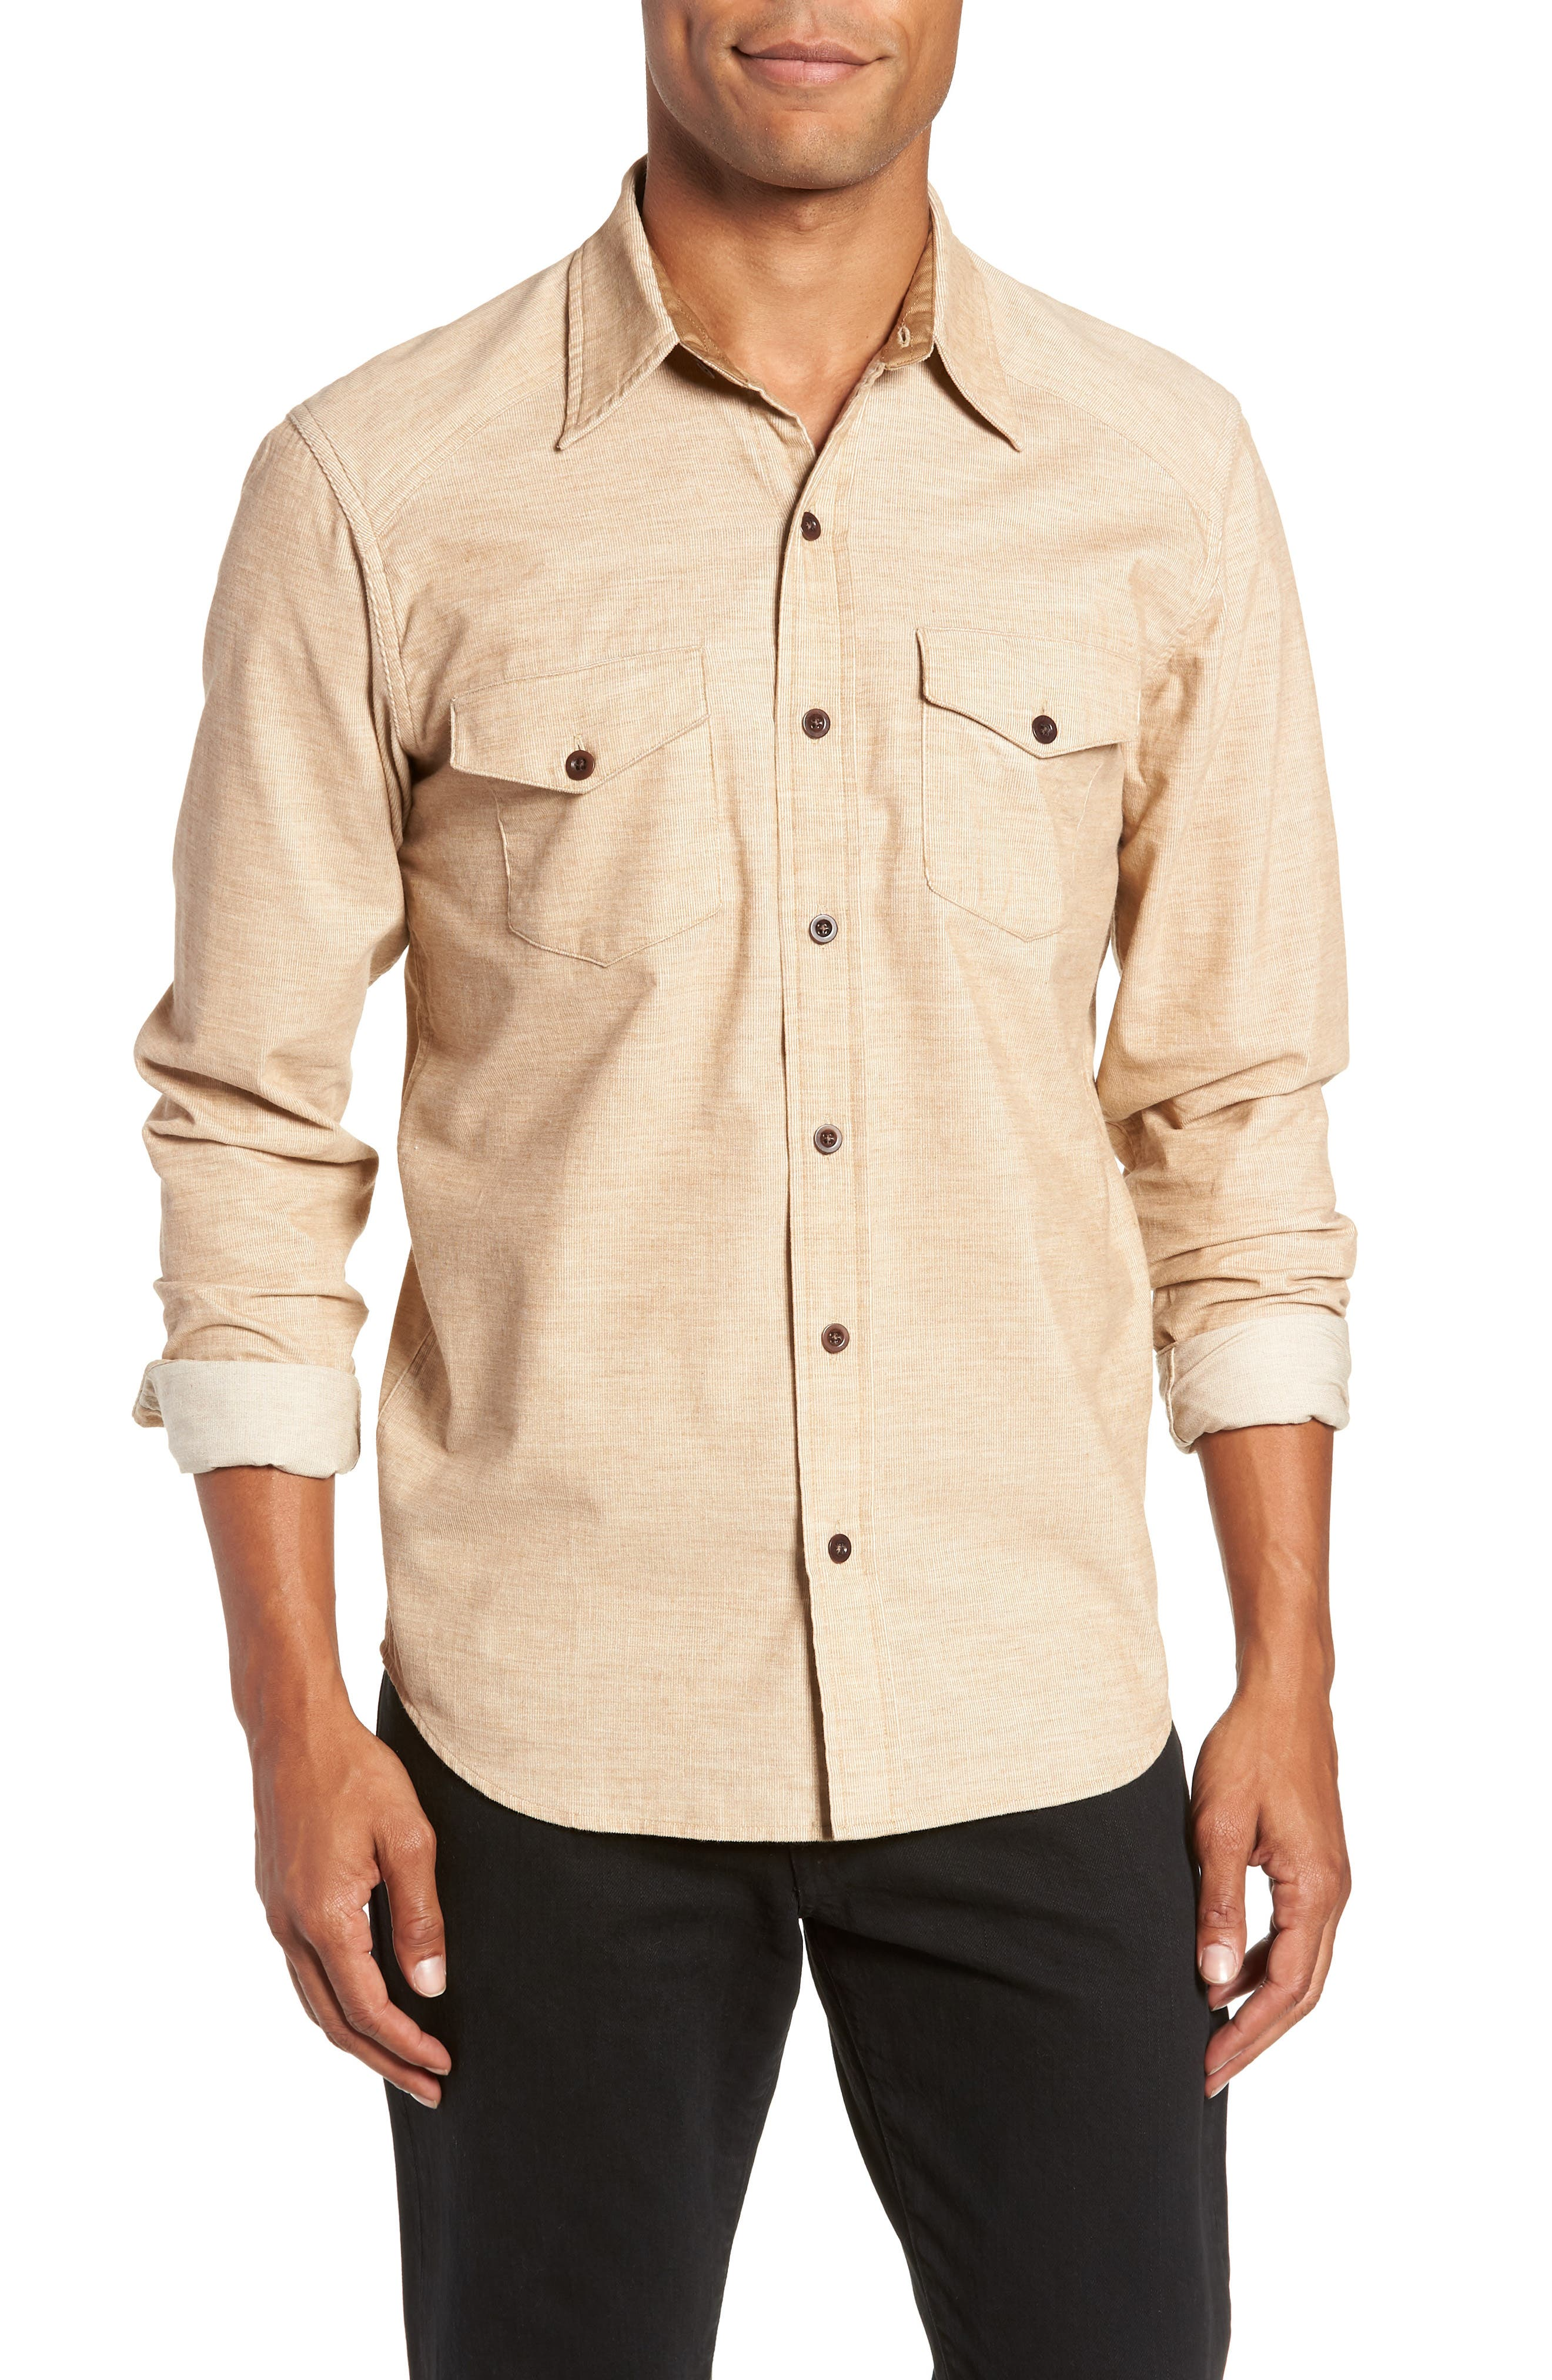 John Addison Engineer Shirt,                             Main thumbnail 1, color,                             KHAKI HEATHER